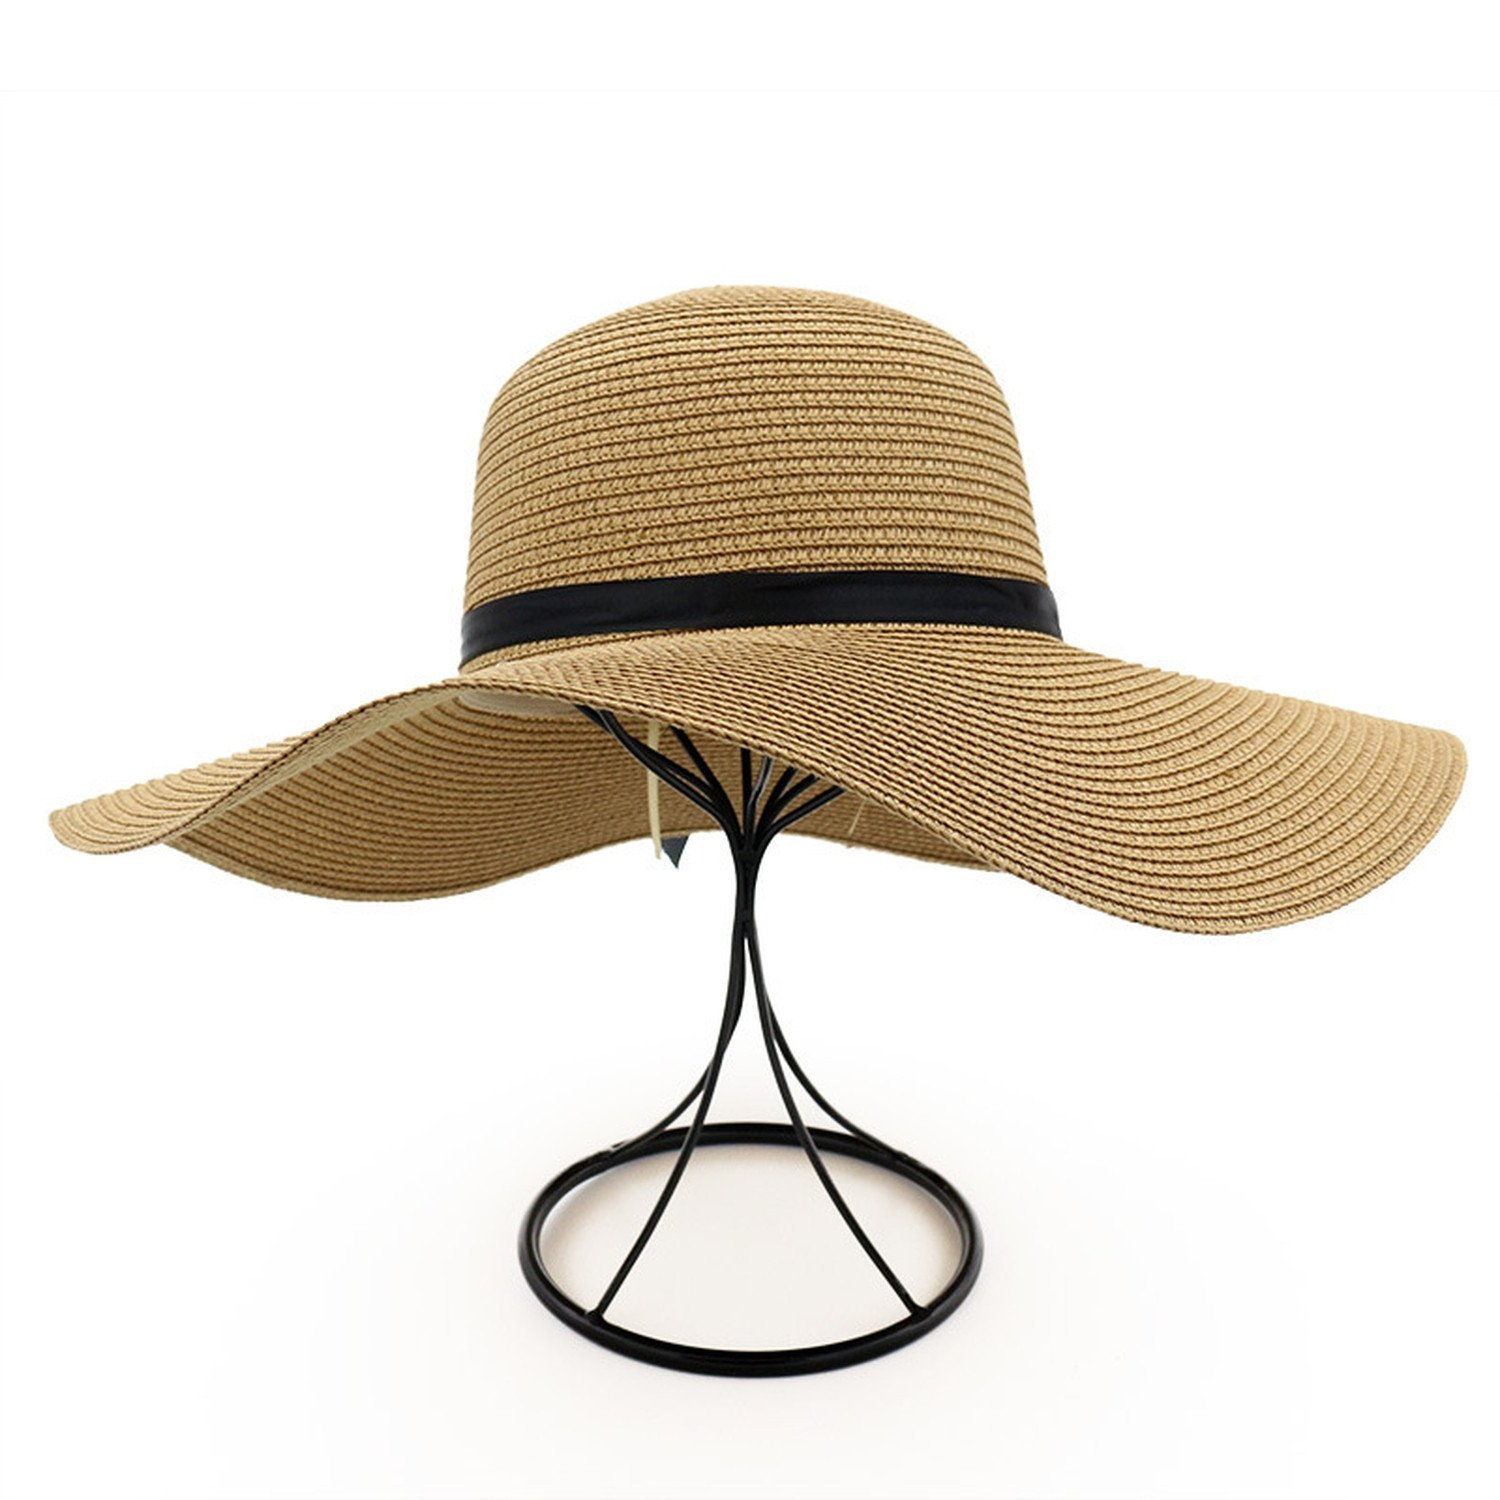 Spring and summer new hat female straw hat seaside holiday beach sun hat big hat bow bow sun hat,Khaki,adjustable by Spring Moon party-hats (Image #3)